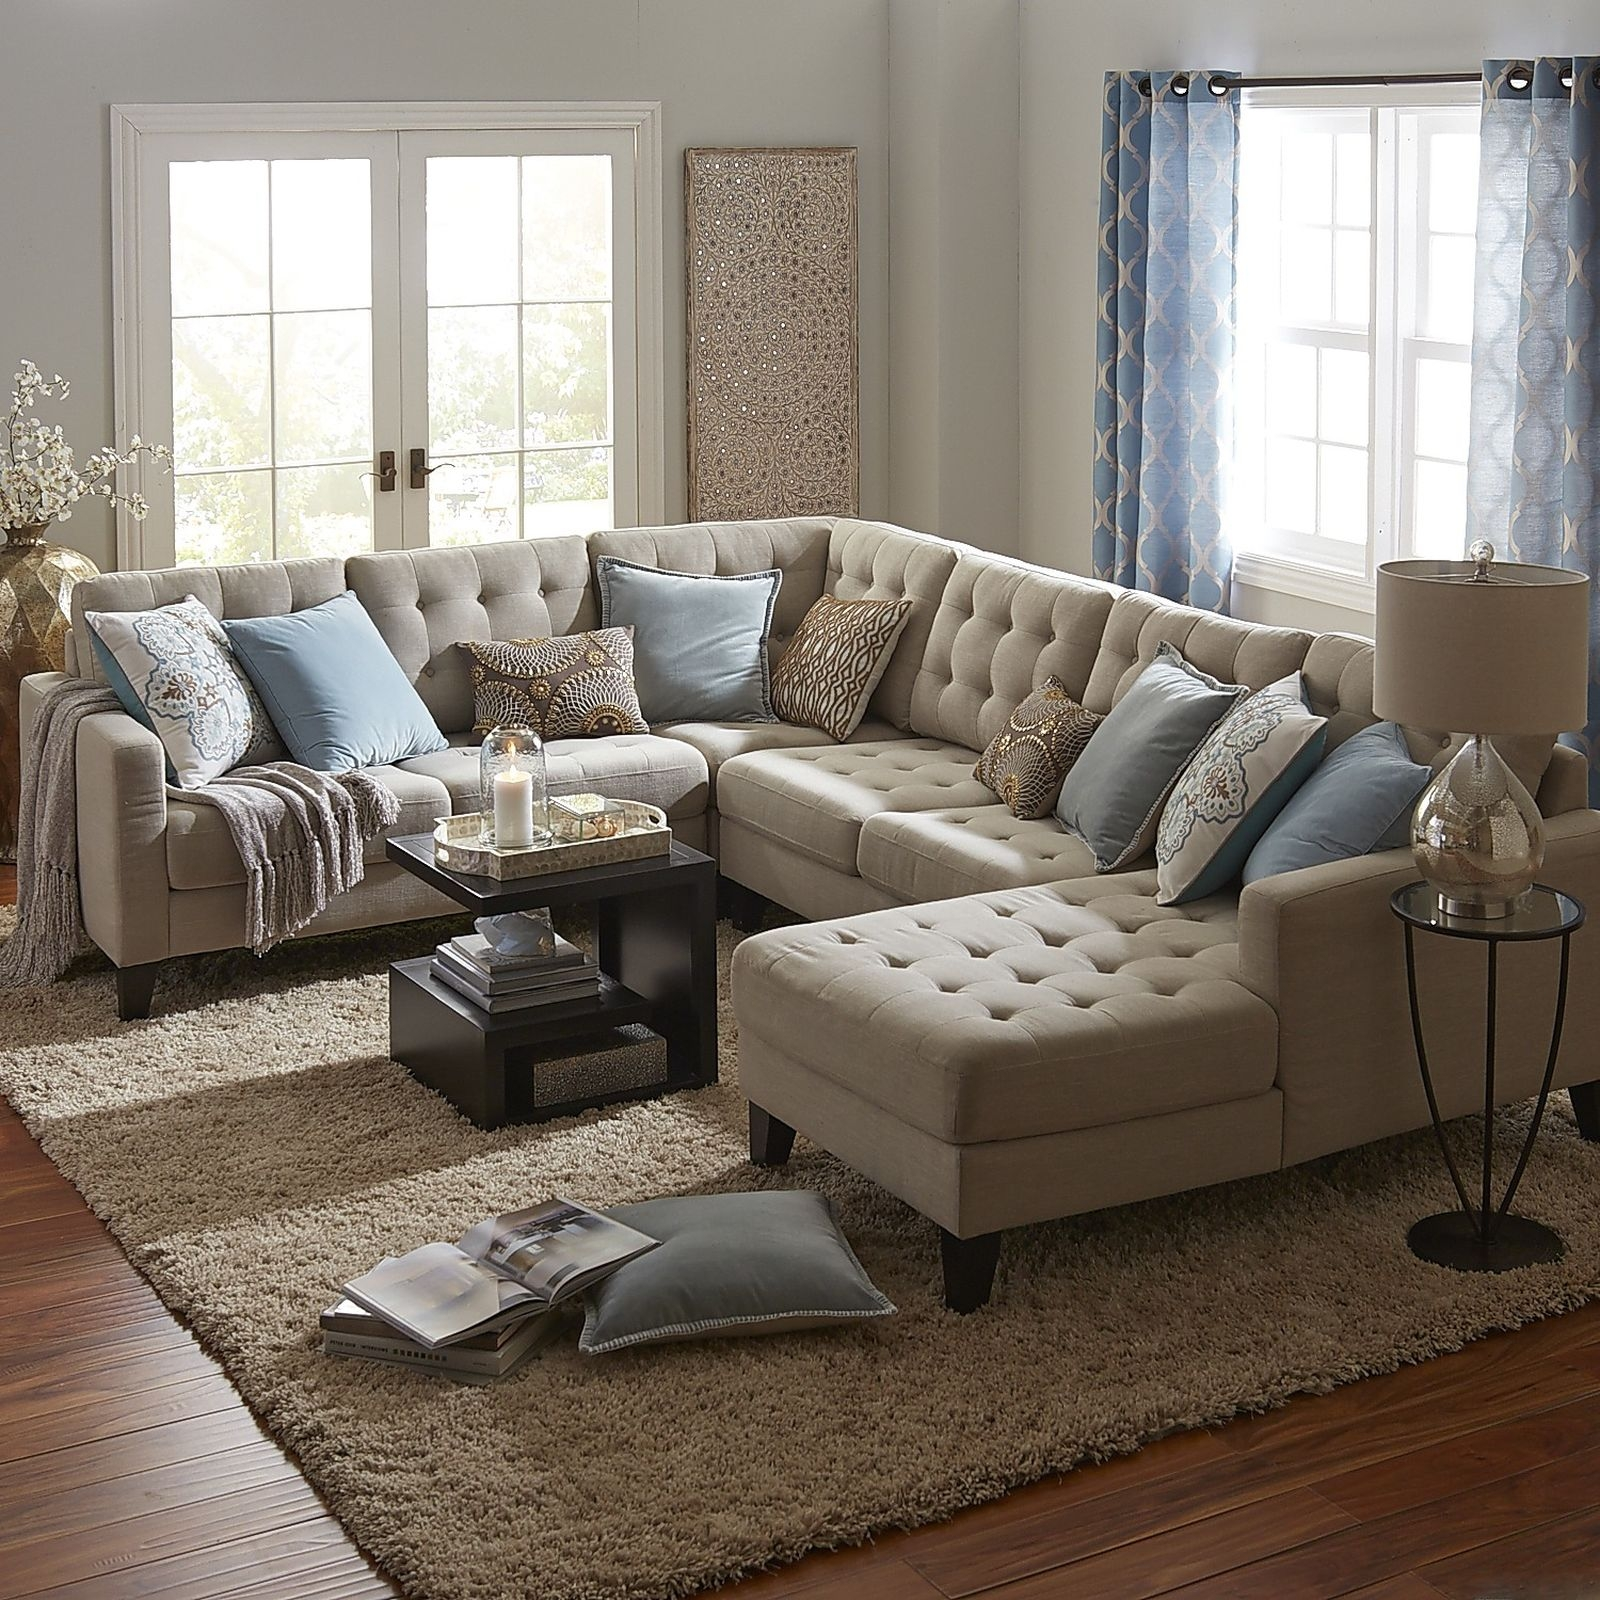 Elegant Sectional Sofas 54 For Your Modern Sofa Ideas With With Elegant Sectional Sofas (Image 9 of 15)